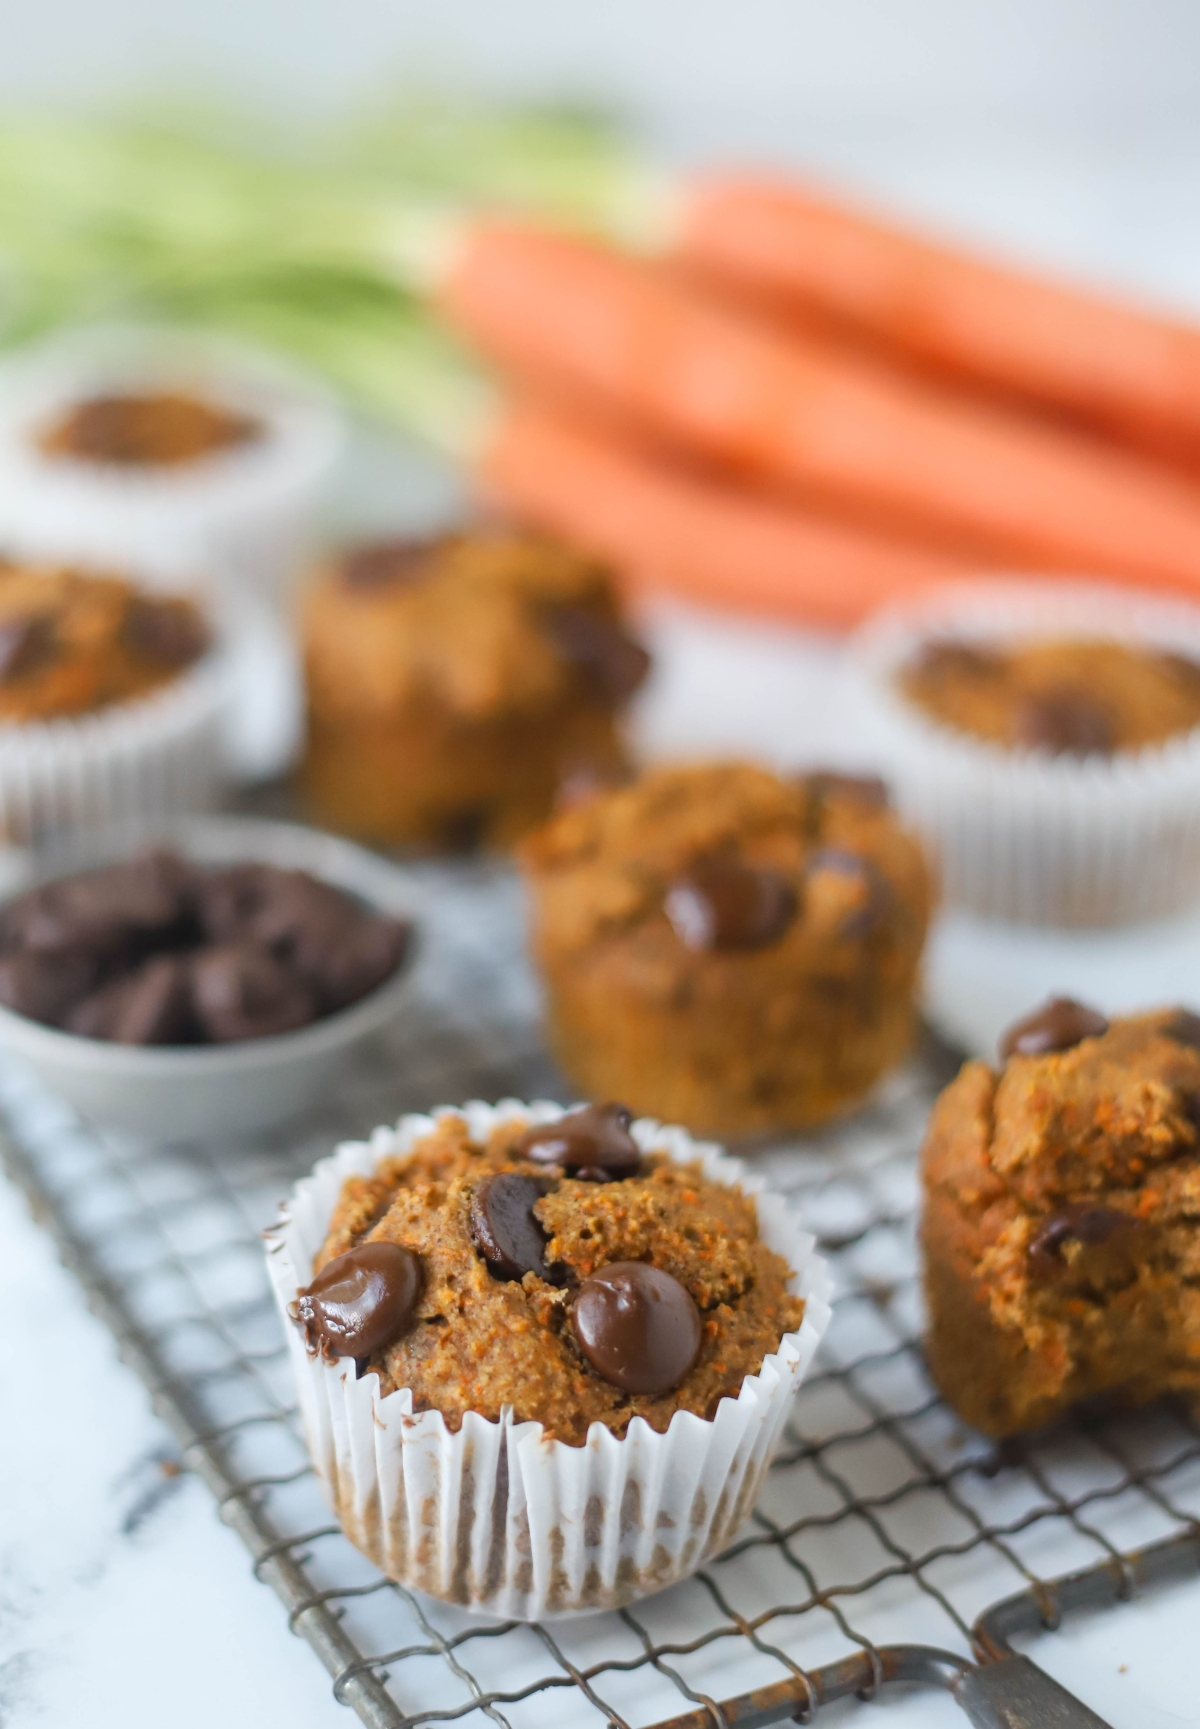 Banana Carrot Muffin closeup with other muffins and a cup of dark chocolate chips blurred behind